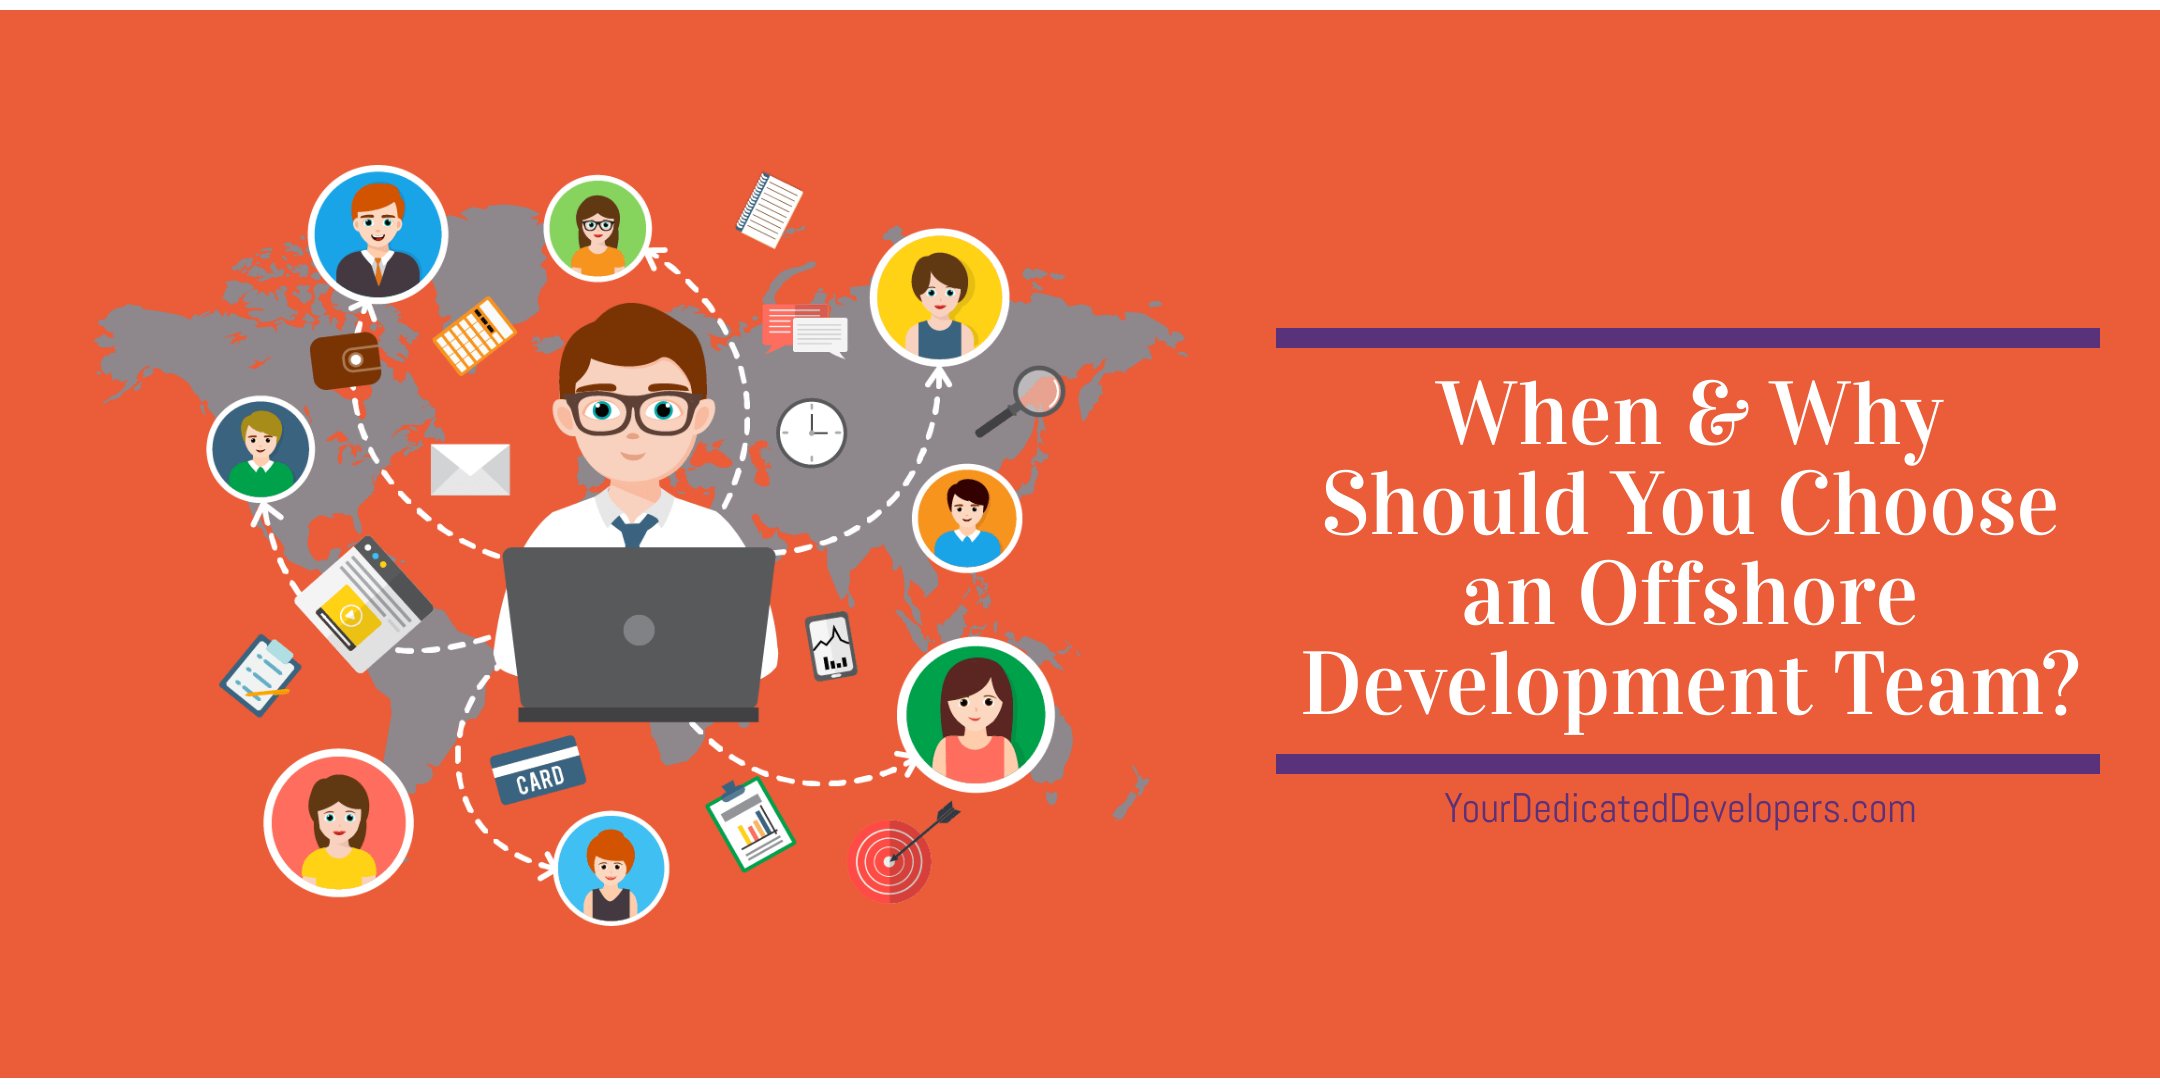 Your Dedicated Developers: When & Why Should You Choose an Offshore Development Team?